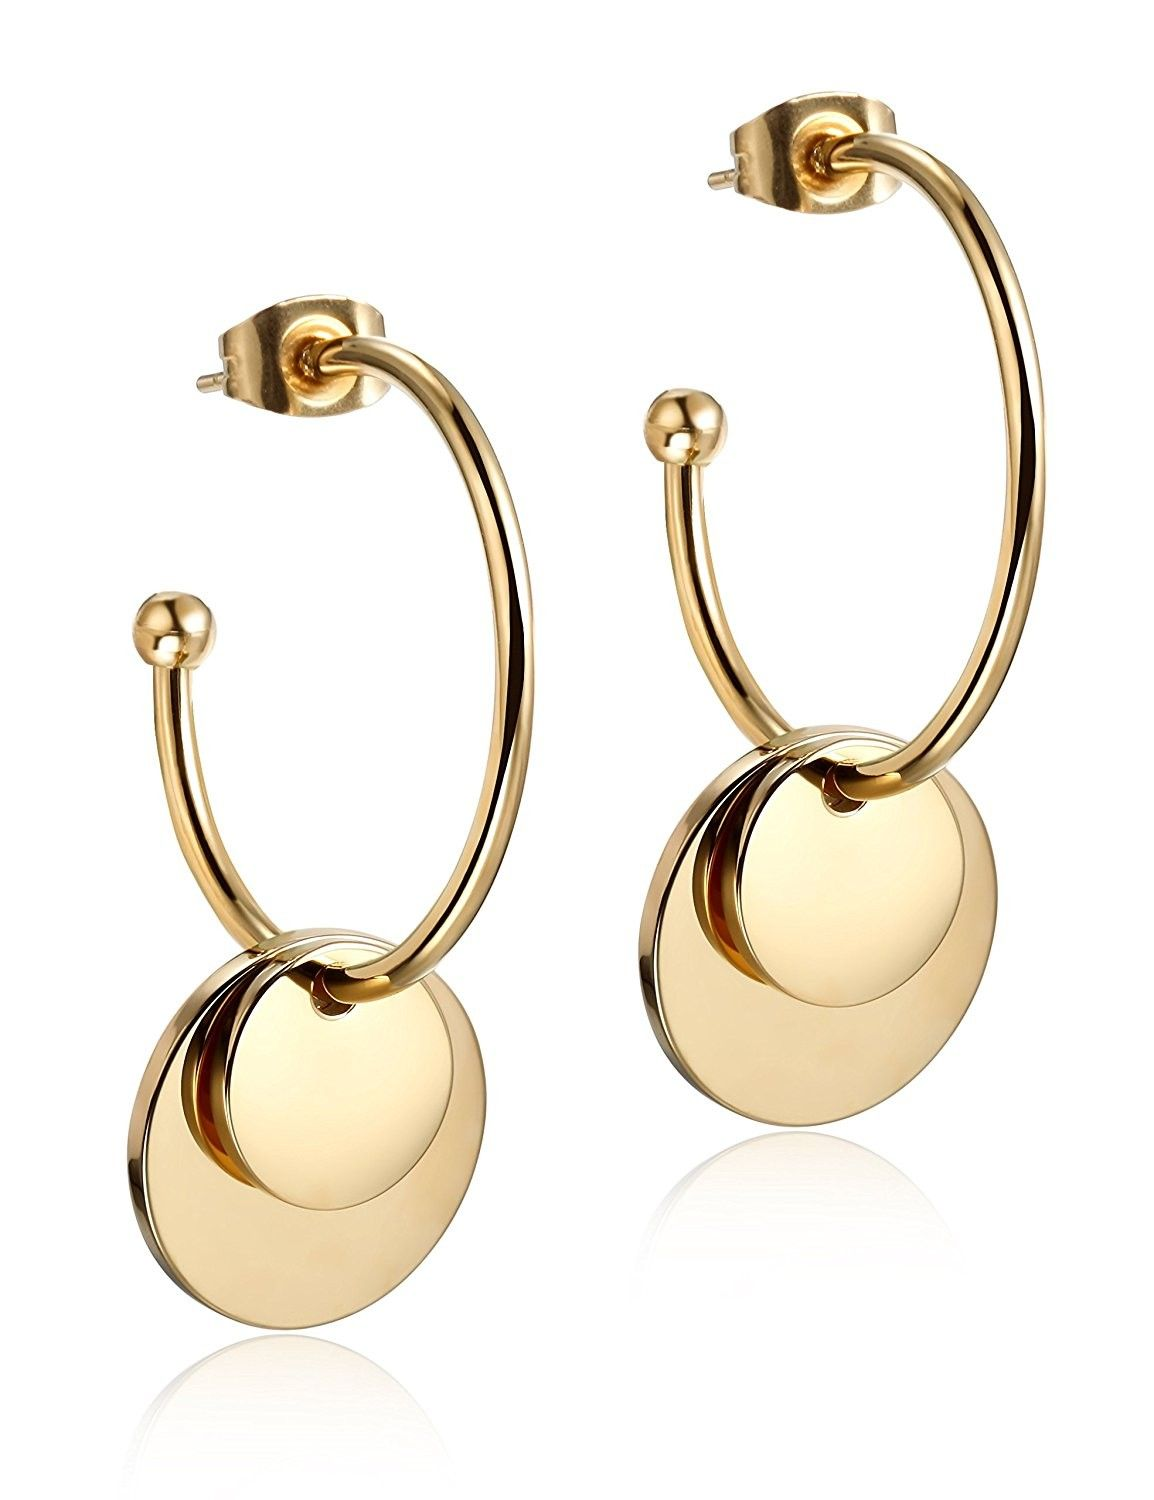 Wistic Gold Hoop Earrings Round Gold Dangle Earrings for Women Girls ... 14405bcbb206